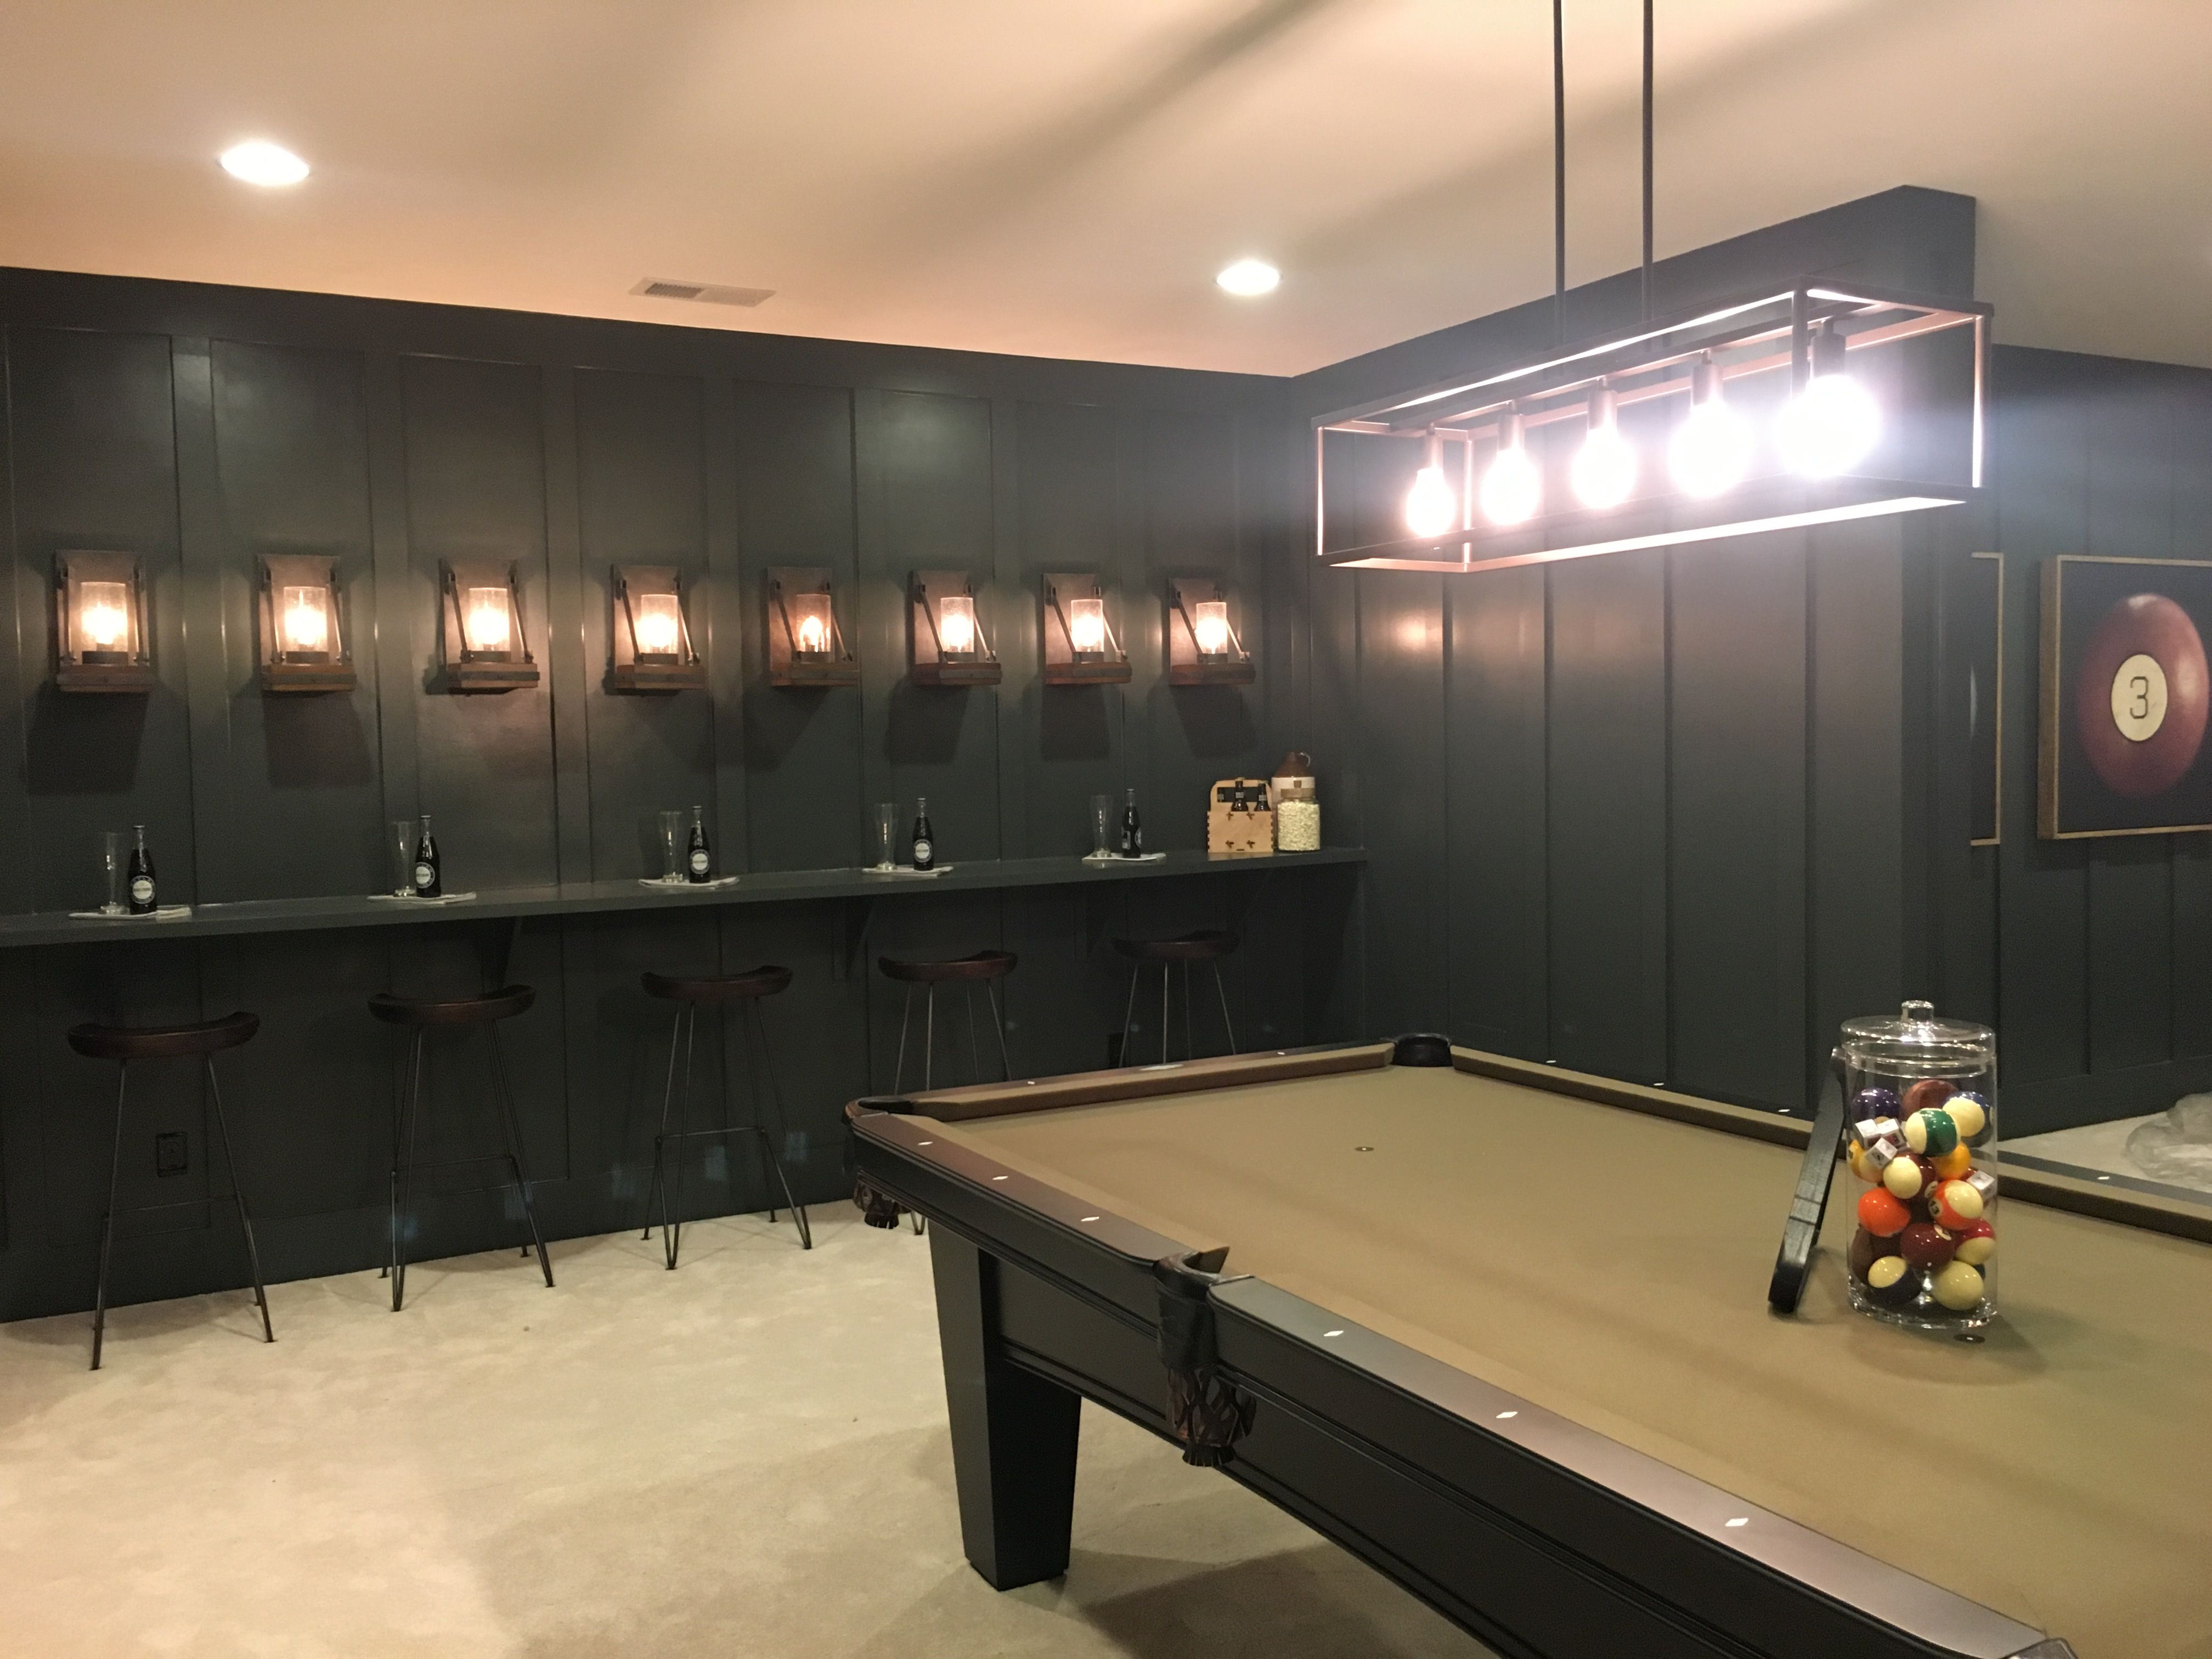 Bring the family together with rec room games · table tennis · table hockey · dart games · foosball · indoor basketball · billiards · other rec room products. Fun drink rail bar in basement rec and game room! #mancave ...